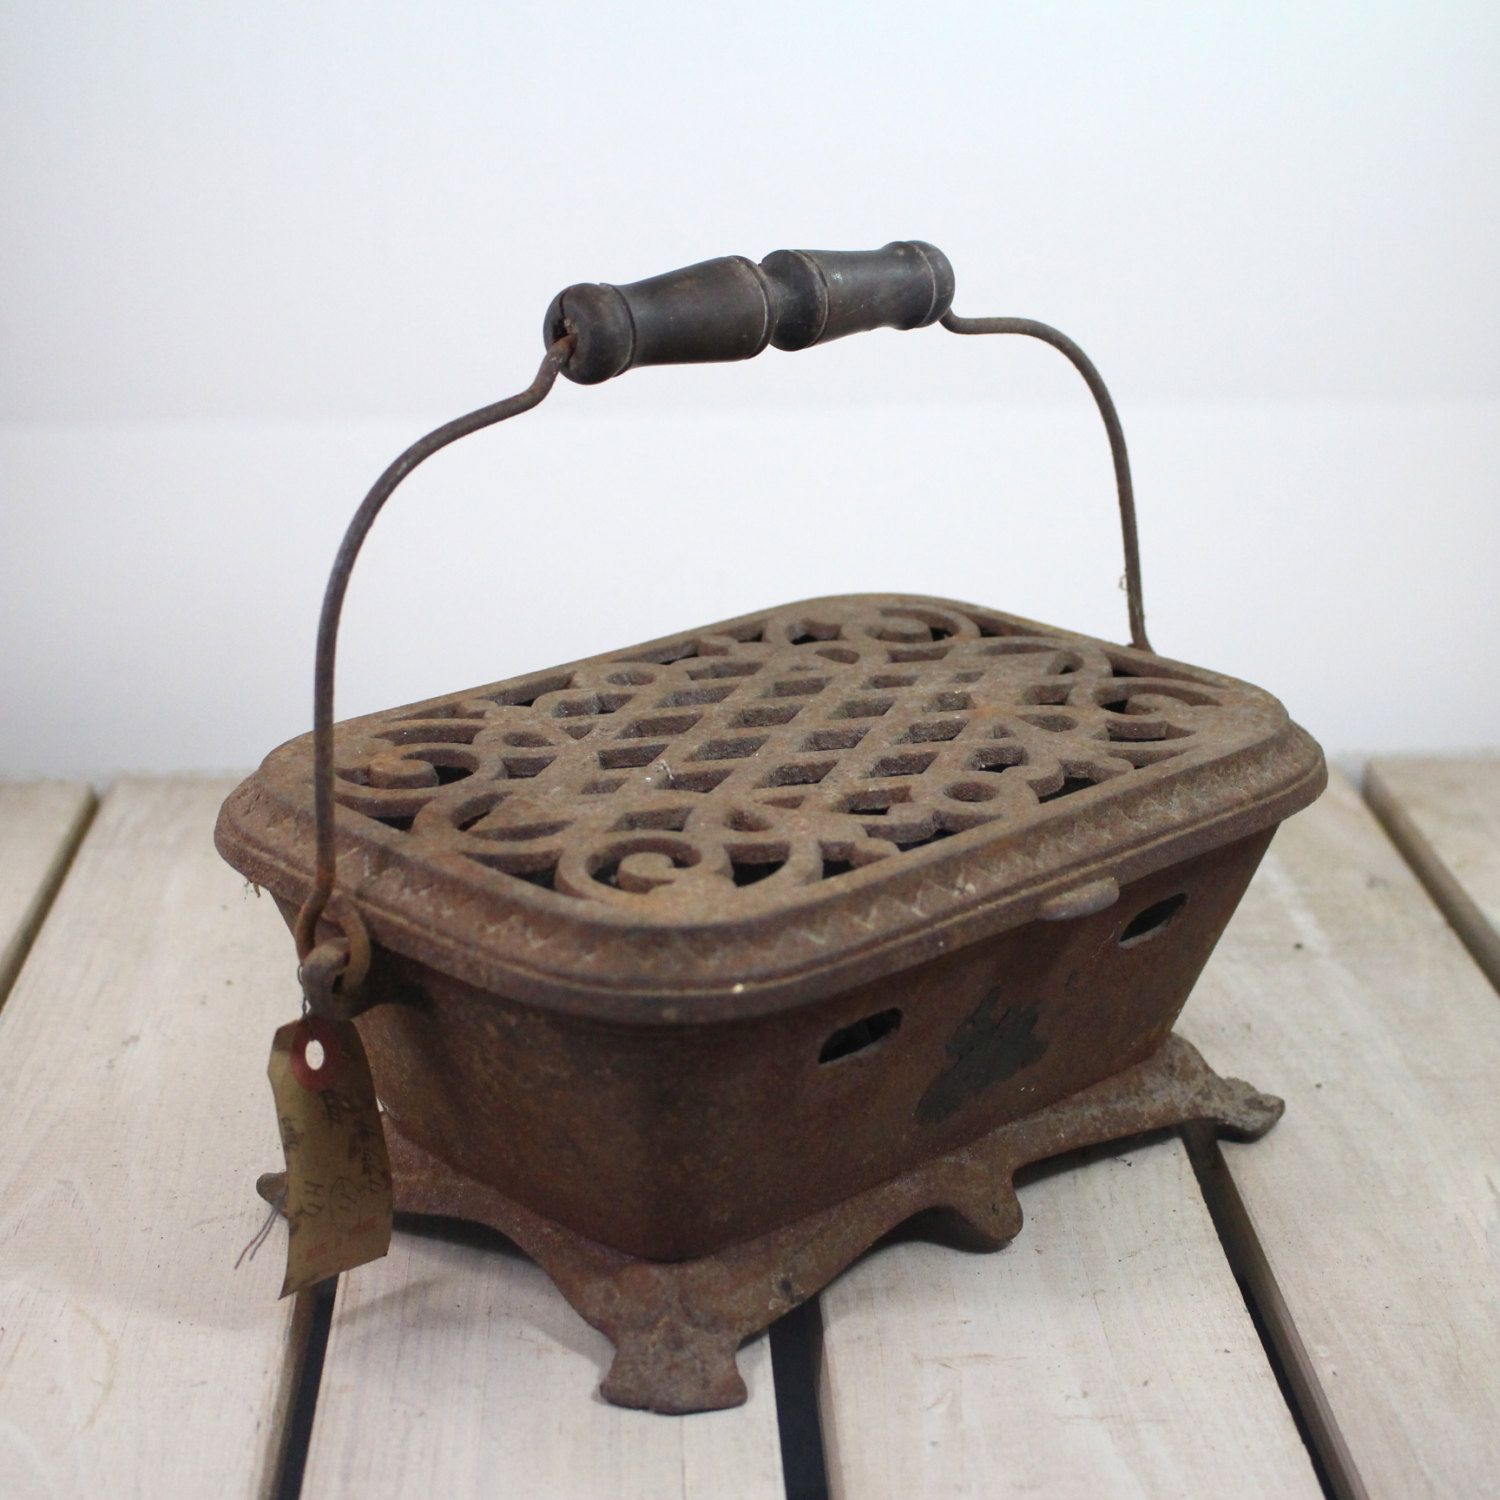 French Cast Iron Foot Warmer Coal Brazier By